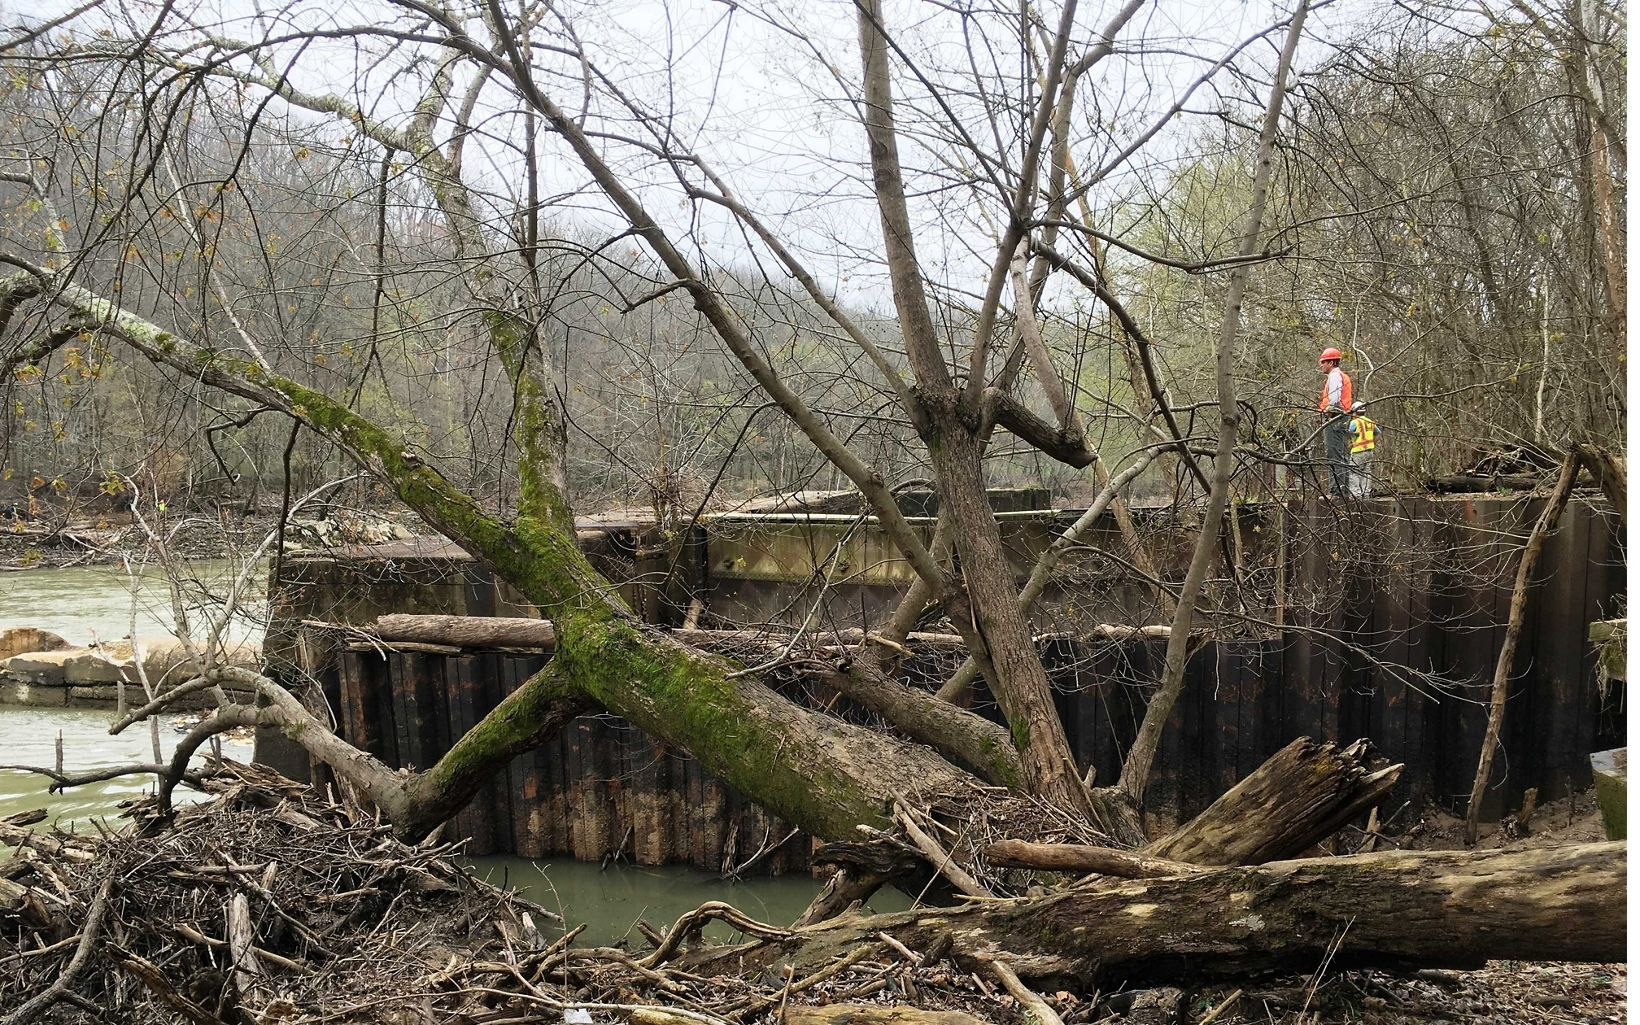 A man in orange examines a large steel structure near a river.